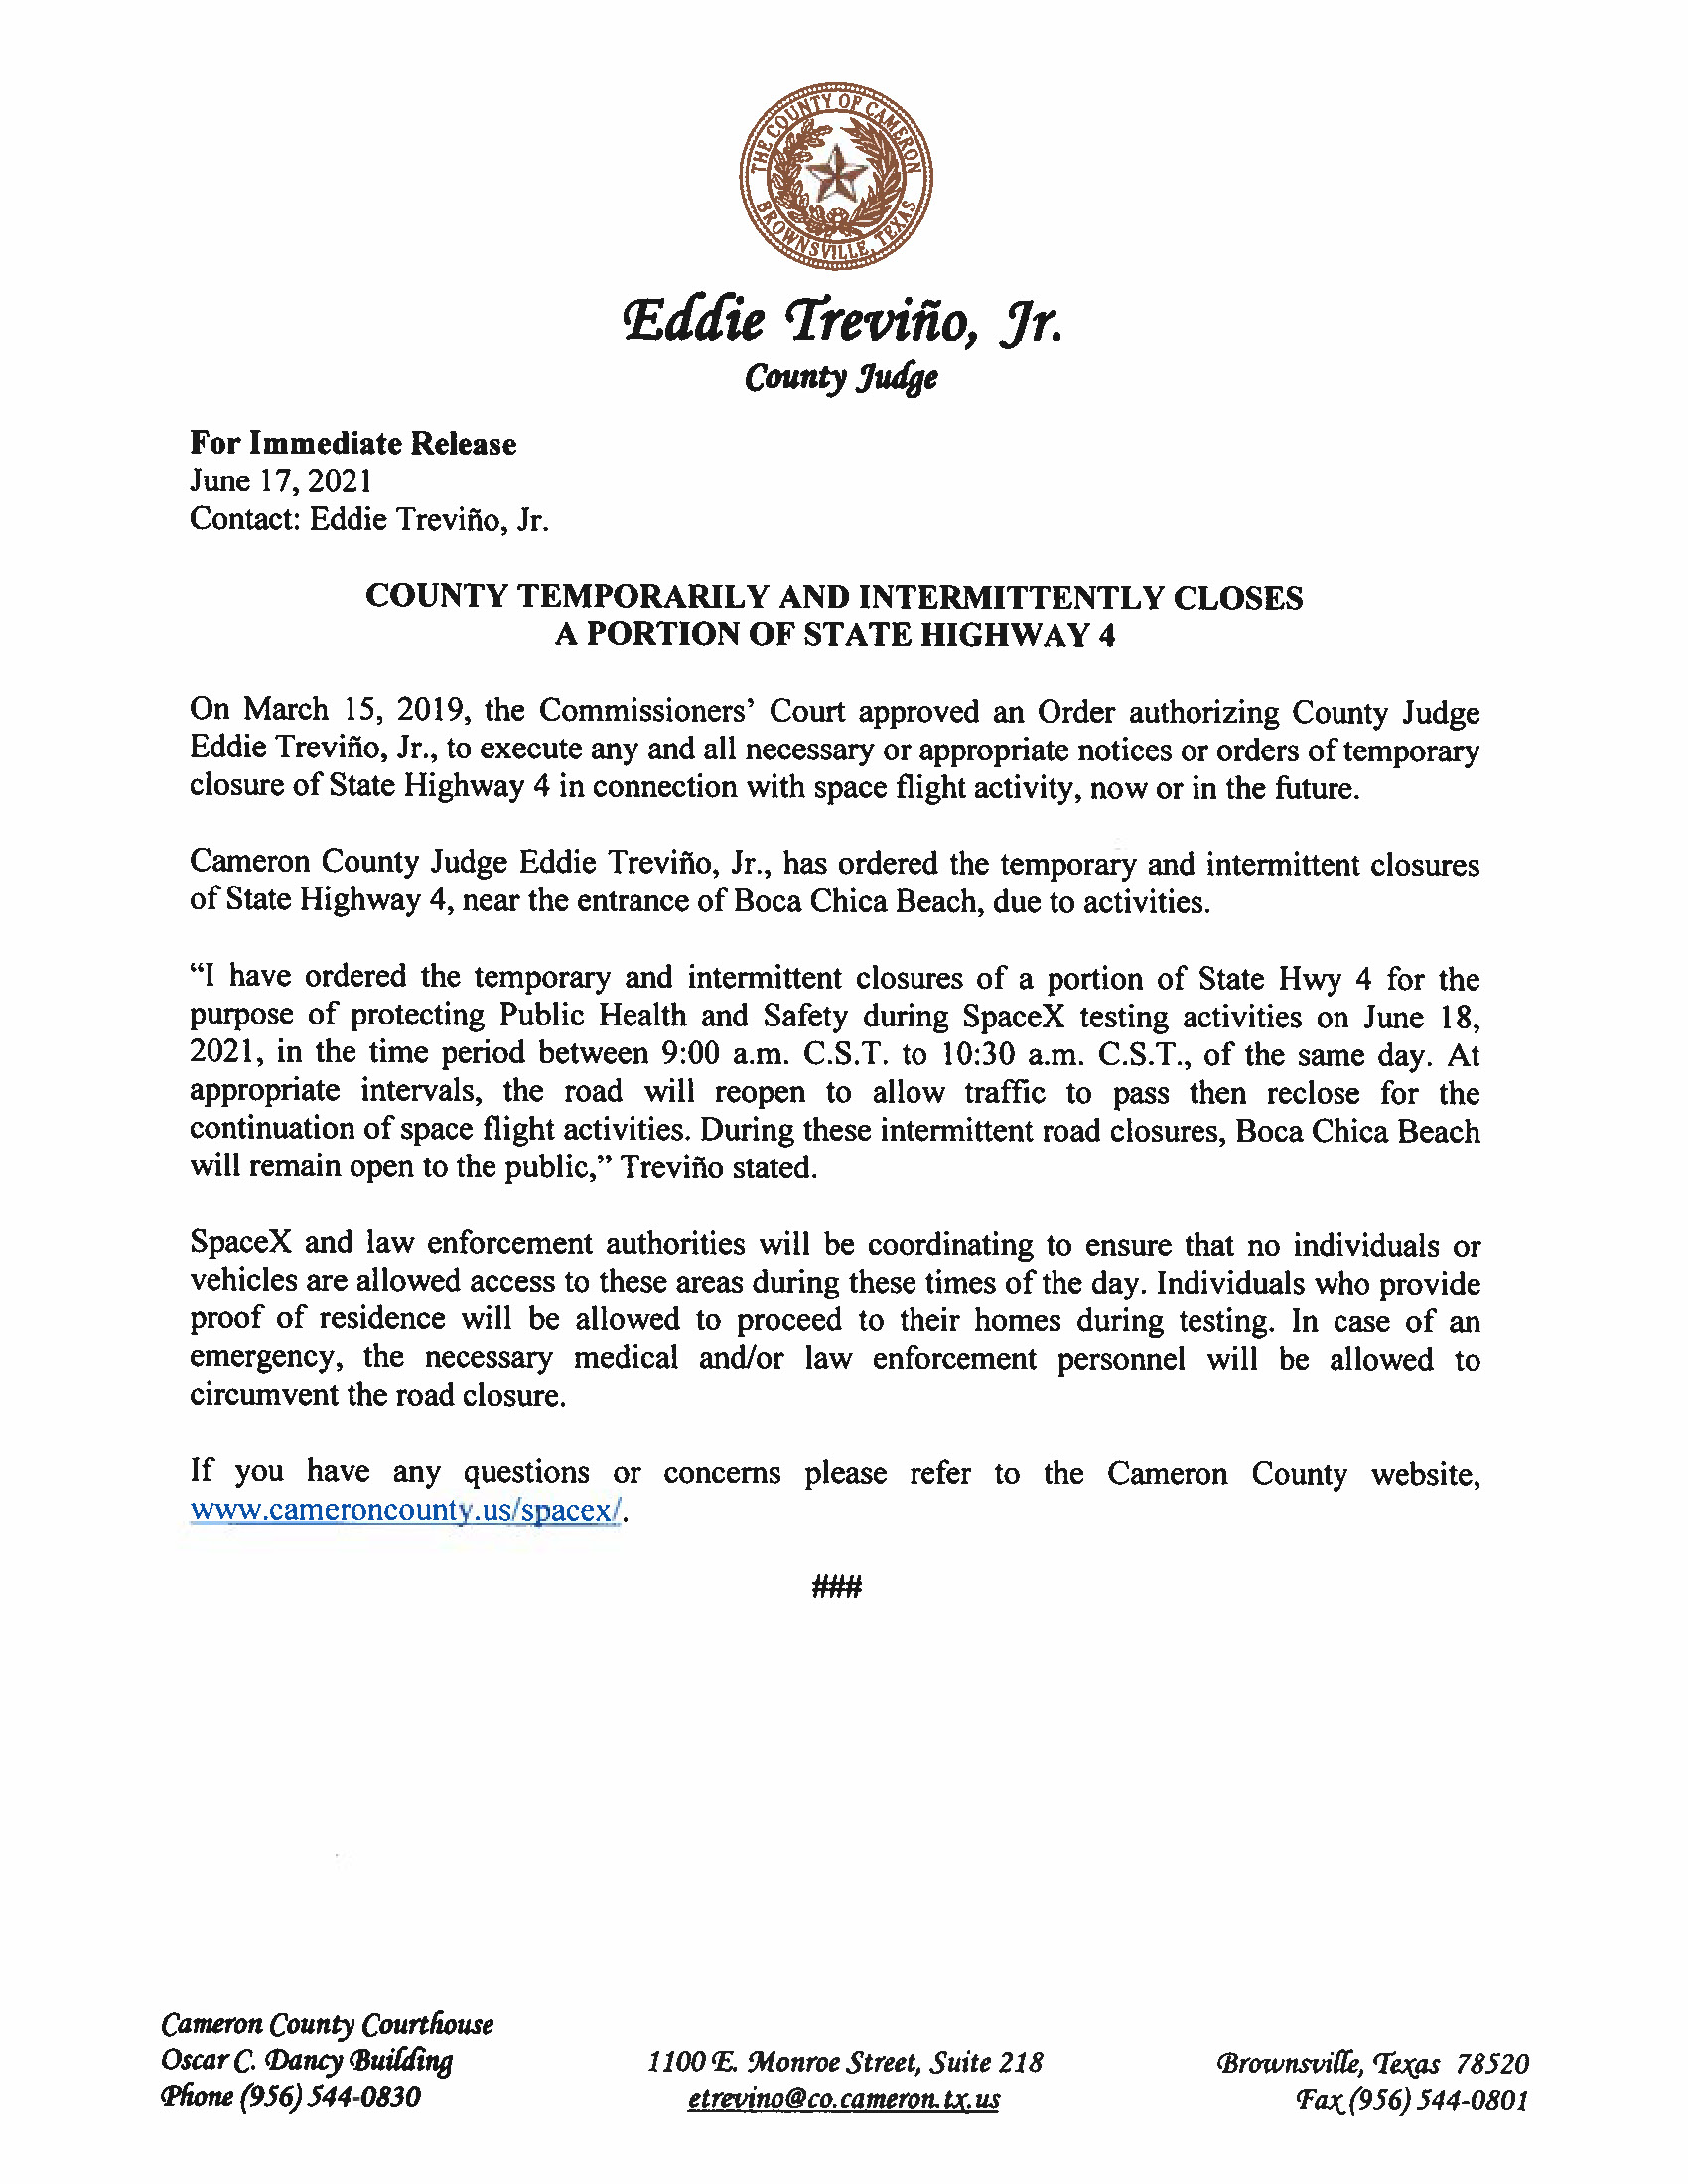 Press Release In English And Spanish.06.18.2021 Page 1